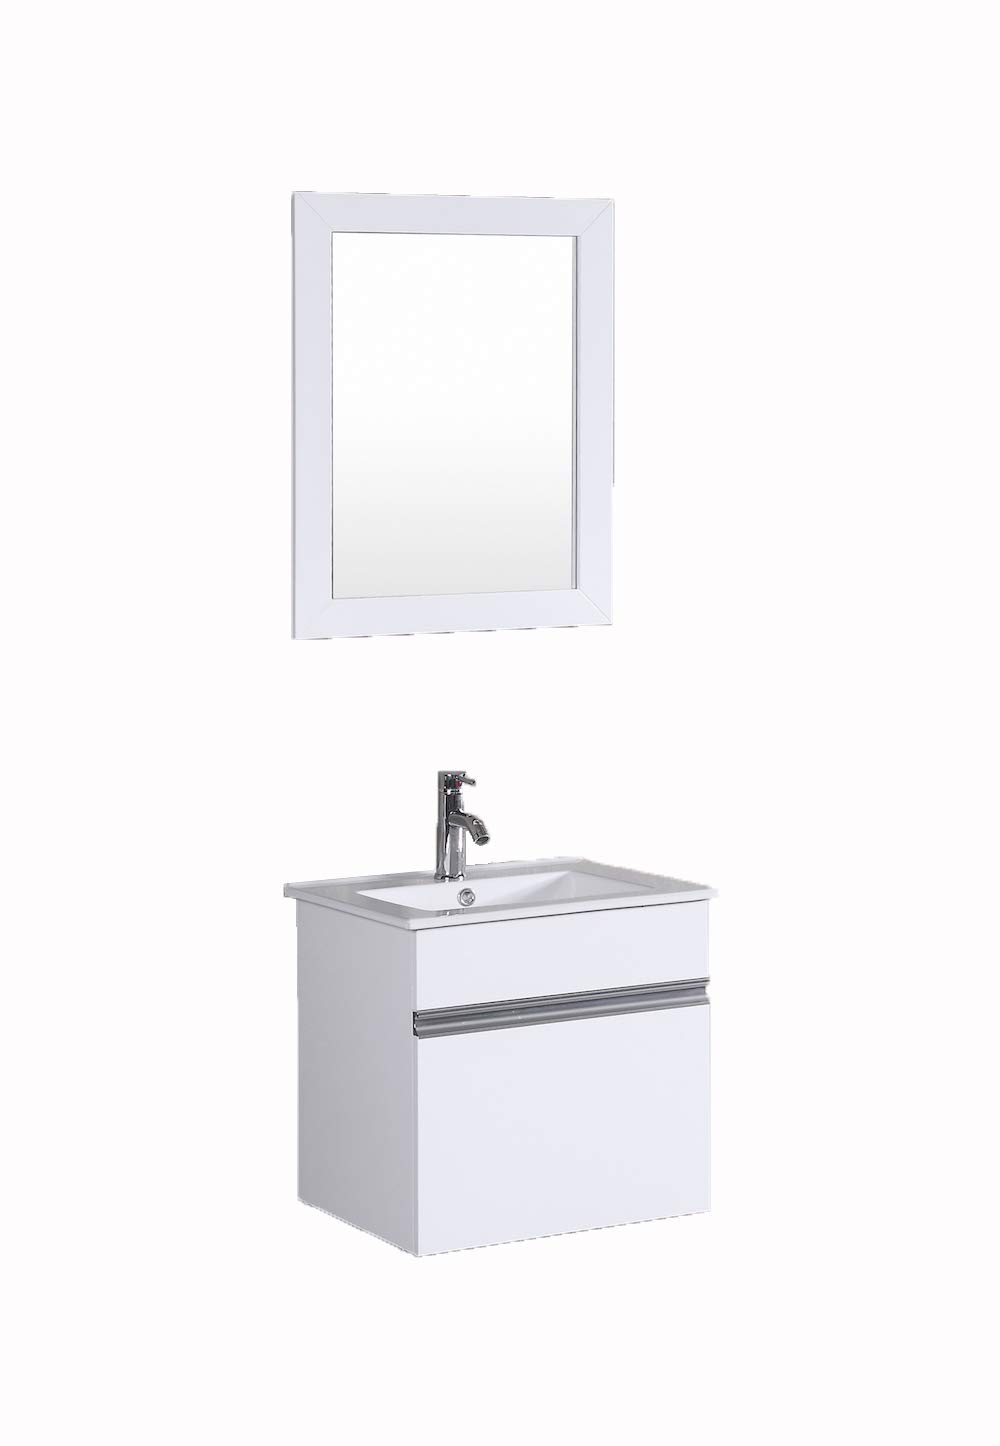 Petronius 20 small white modular wall mount hung floating modern bathroom vanity sink amazon com